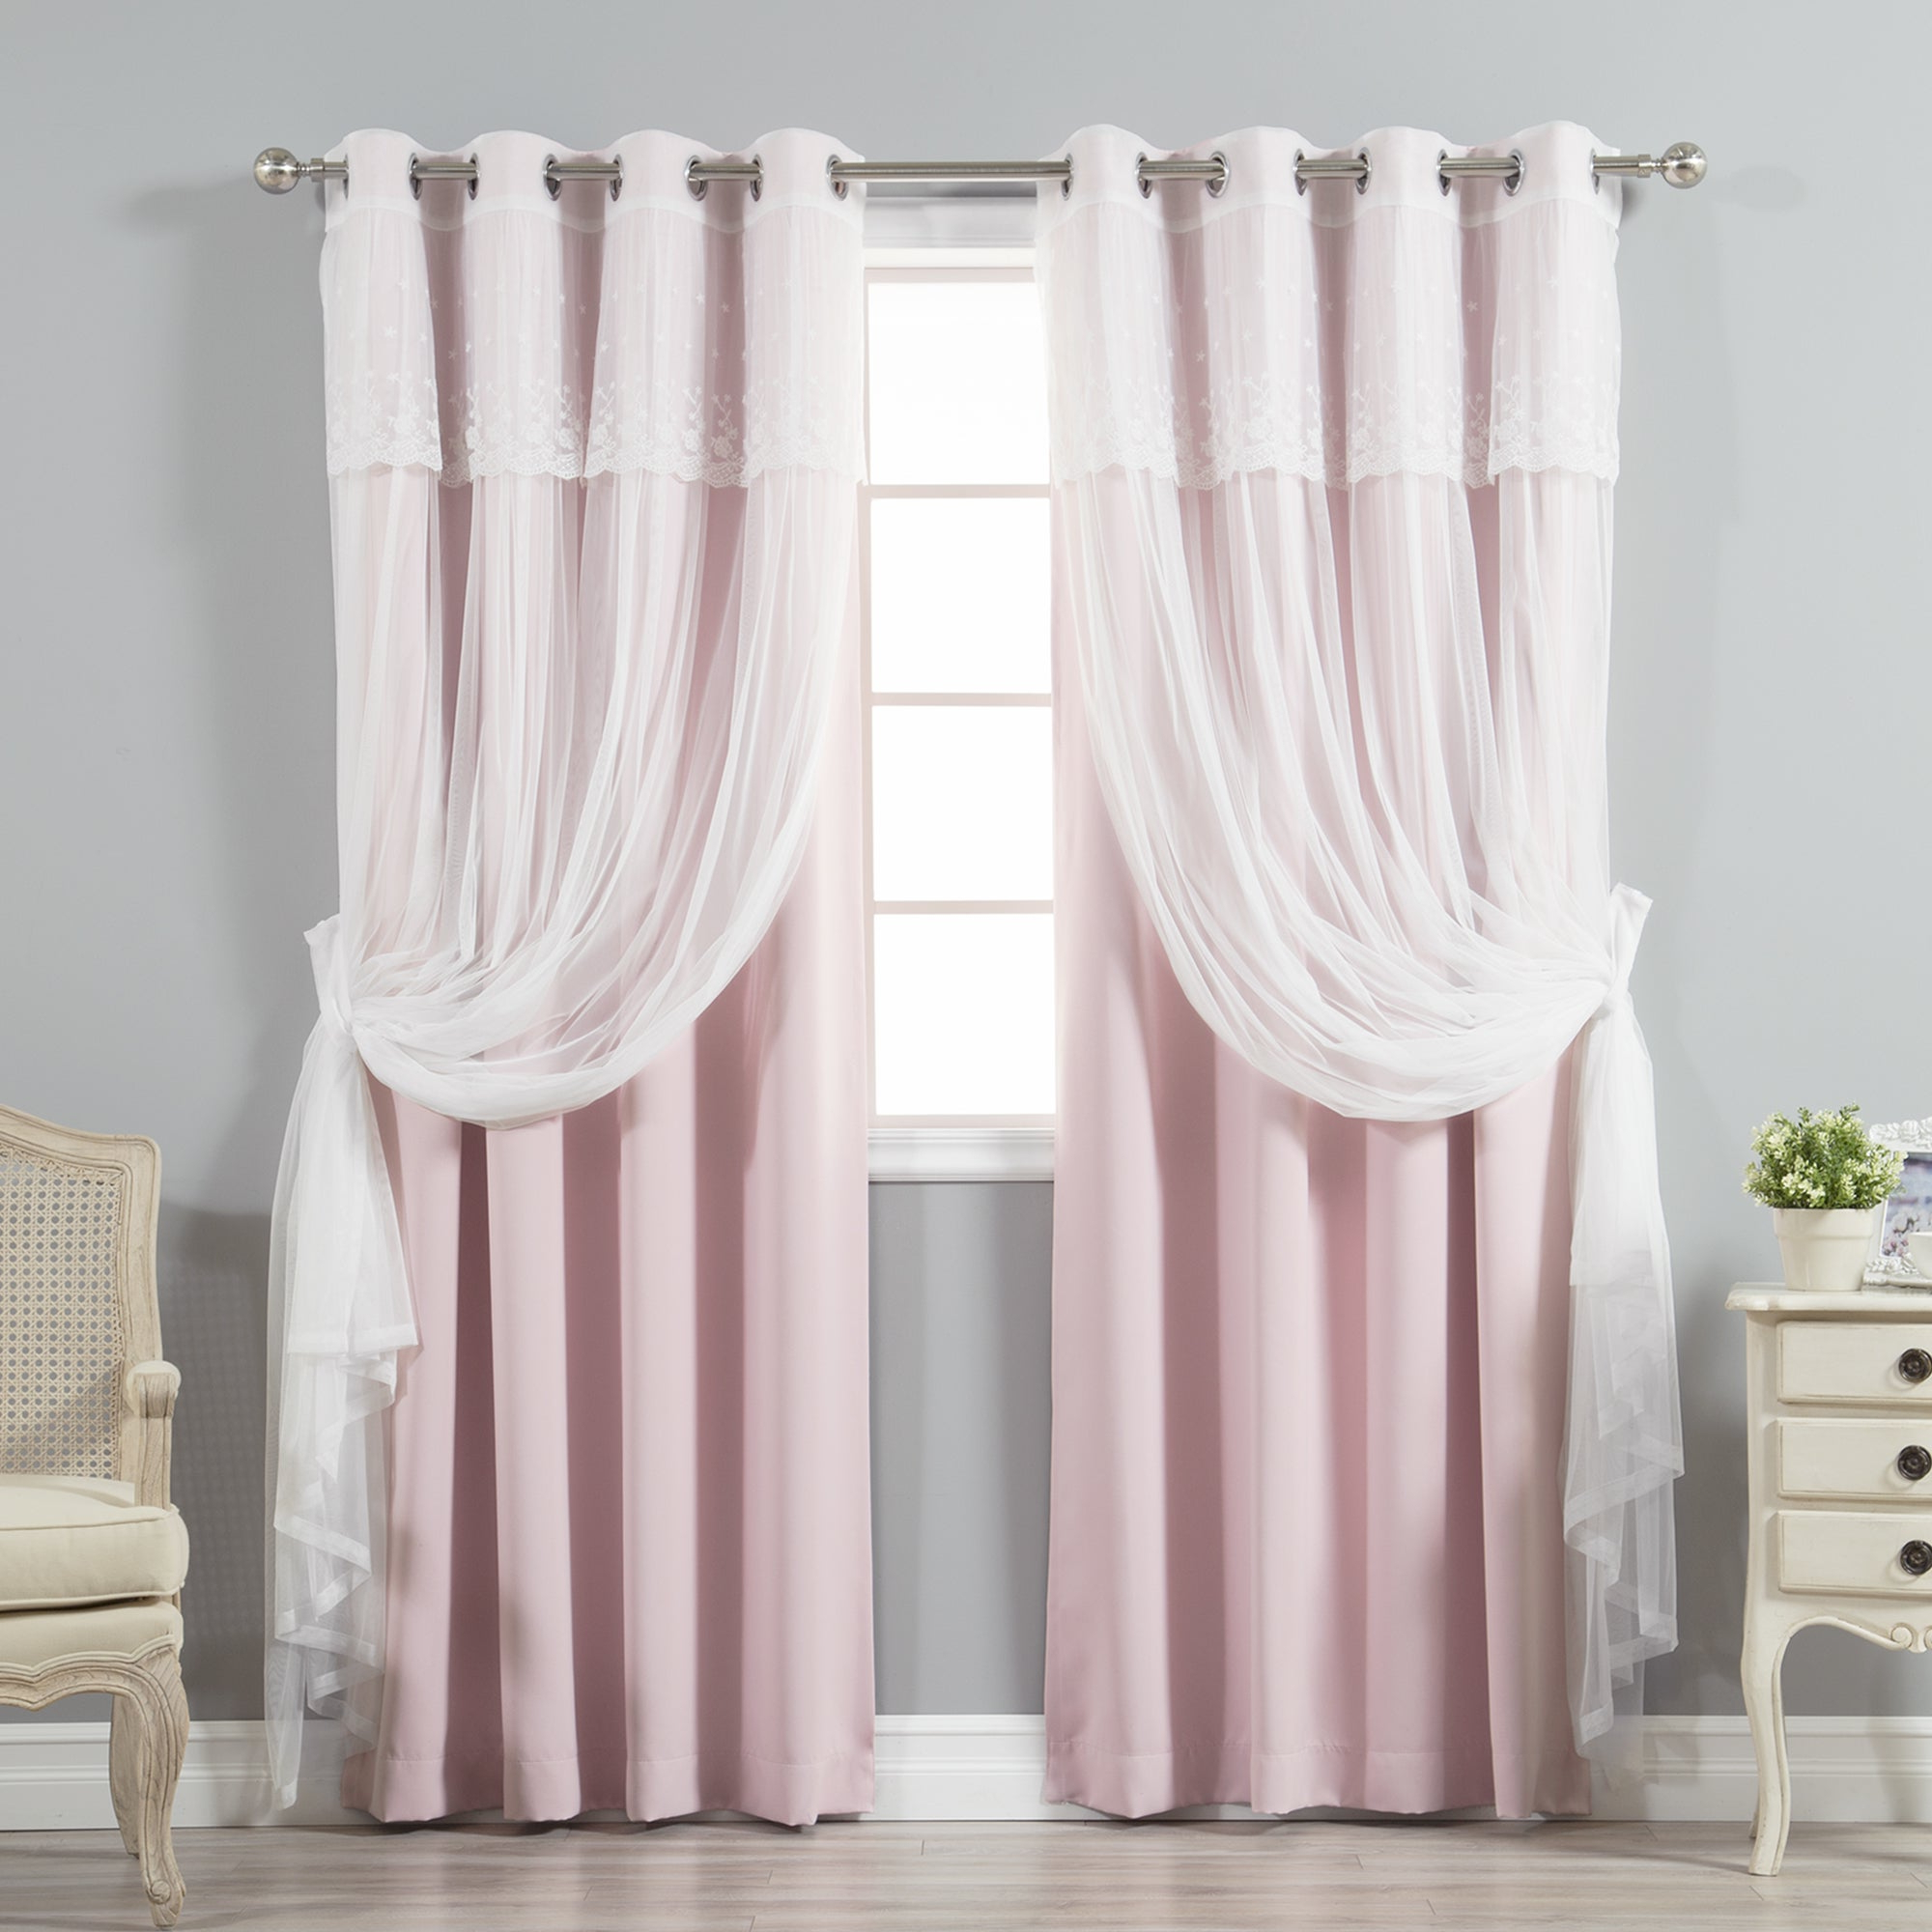 Tulle Sheer With Attached Valance And Blackout 4 Piece Curtain Panel Pairs Regarding Widely Used Aurora Home Mix & Match Tulle Sheer With Attached Valance And Blackout 4 Piece Curtain Panel Pair (View 3 of 20)